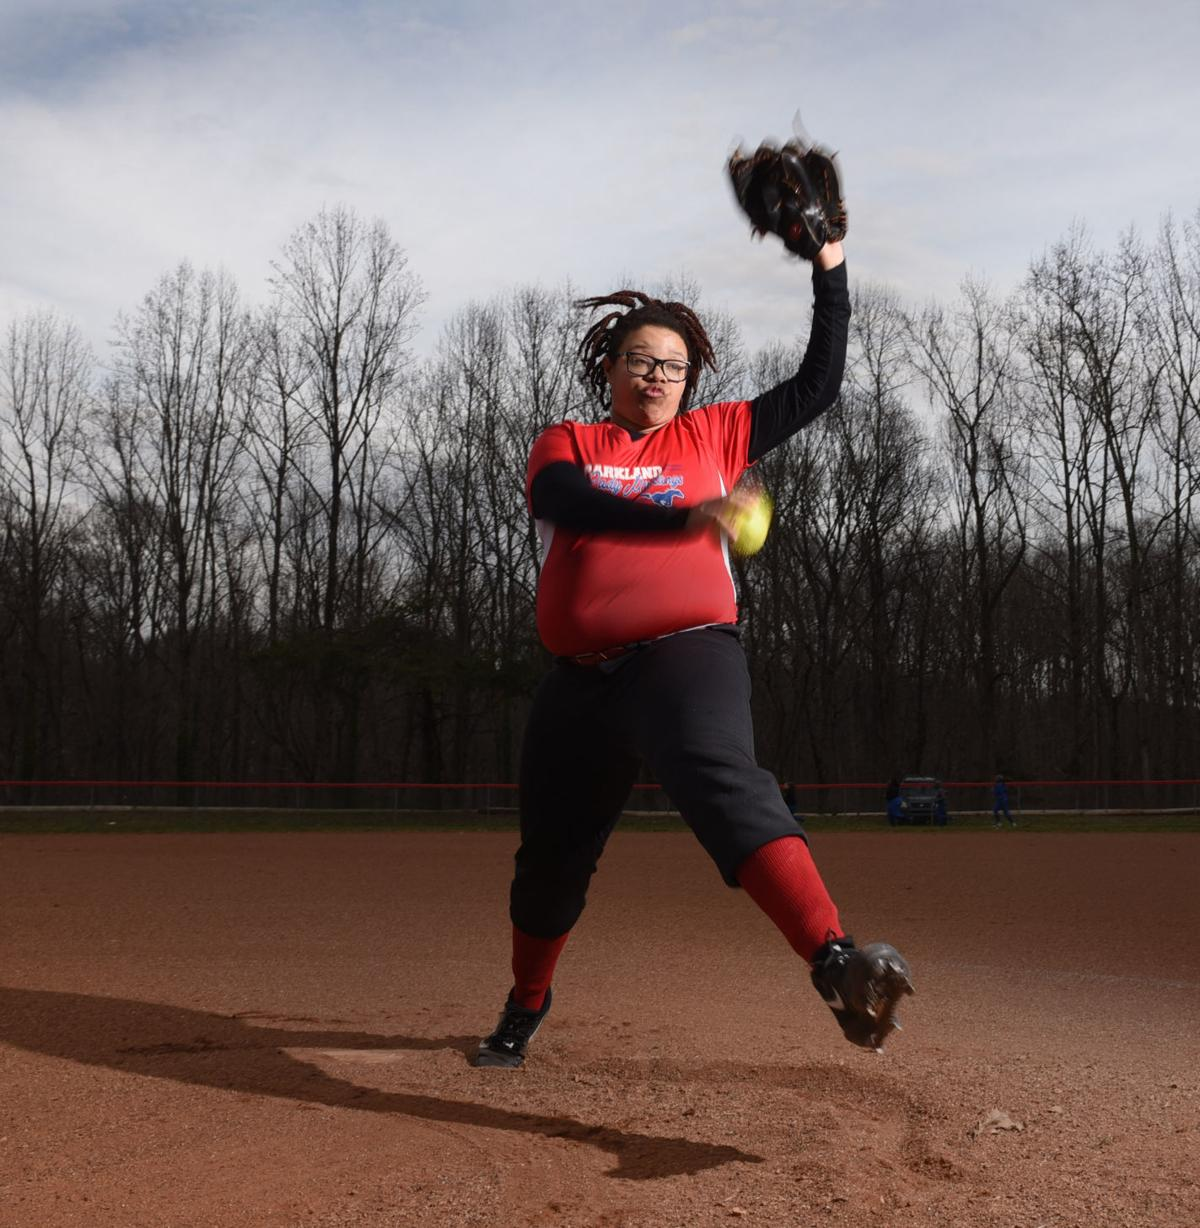 376be62ed9ebcd SportsXtra: This week's featured high school athletes, March 15   High  School   journalnow.com